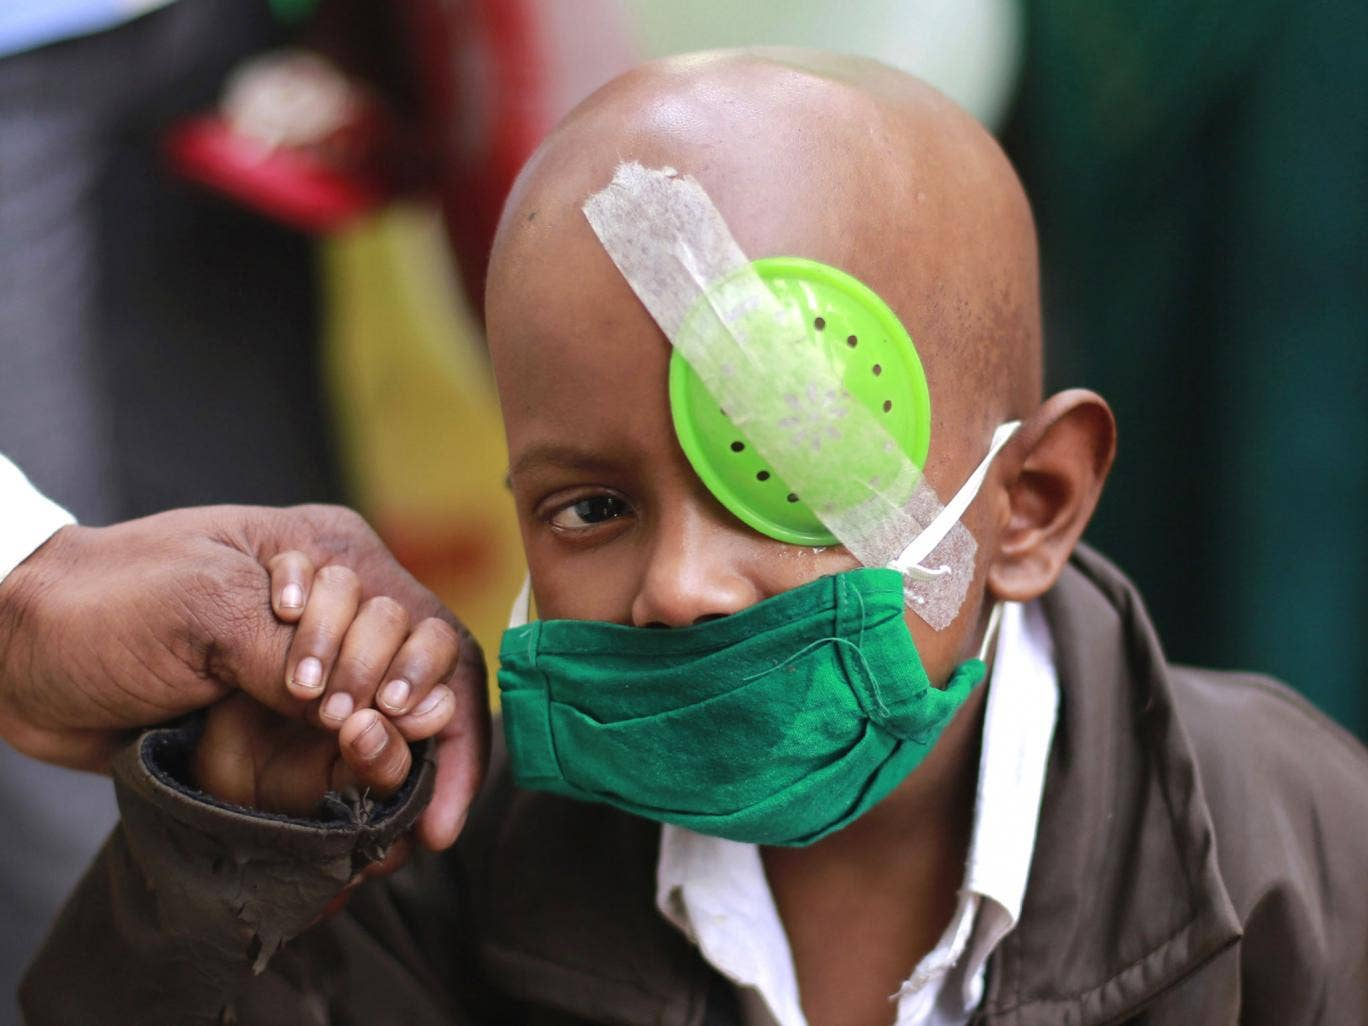 A child suffering from cancer leaves the Tata Memorial cancer treatment and research center on World Cancer Day in Mumbai